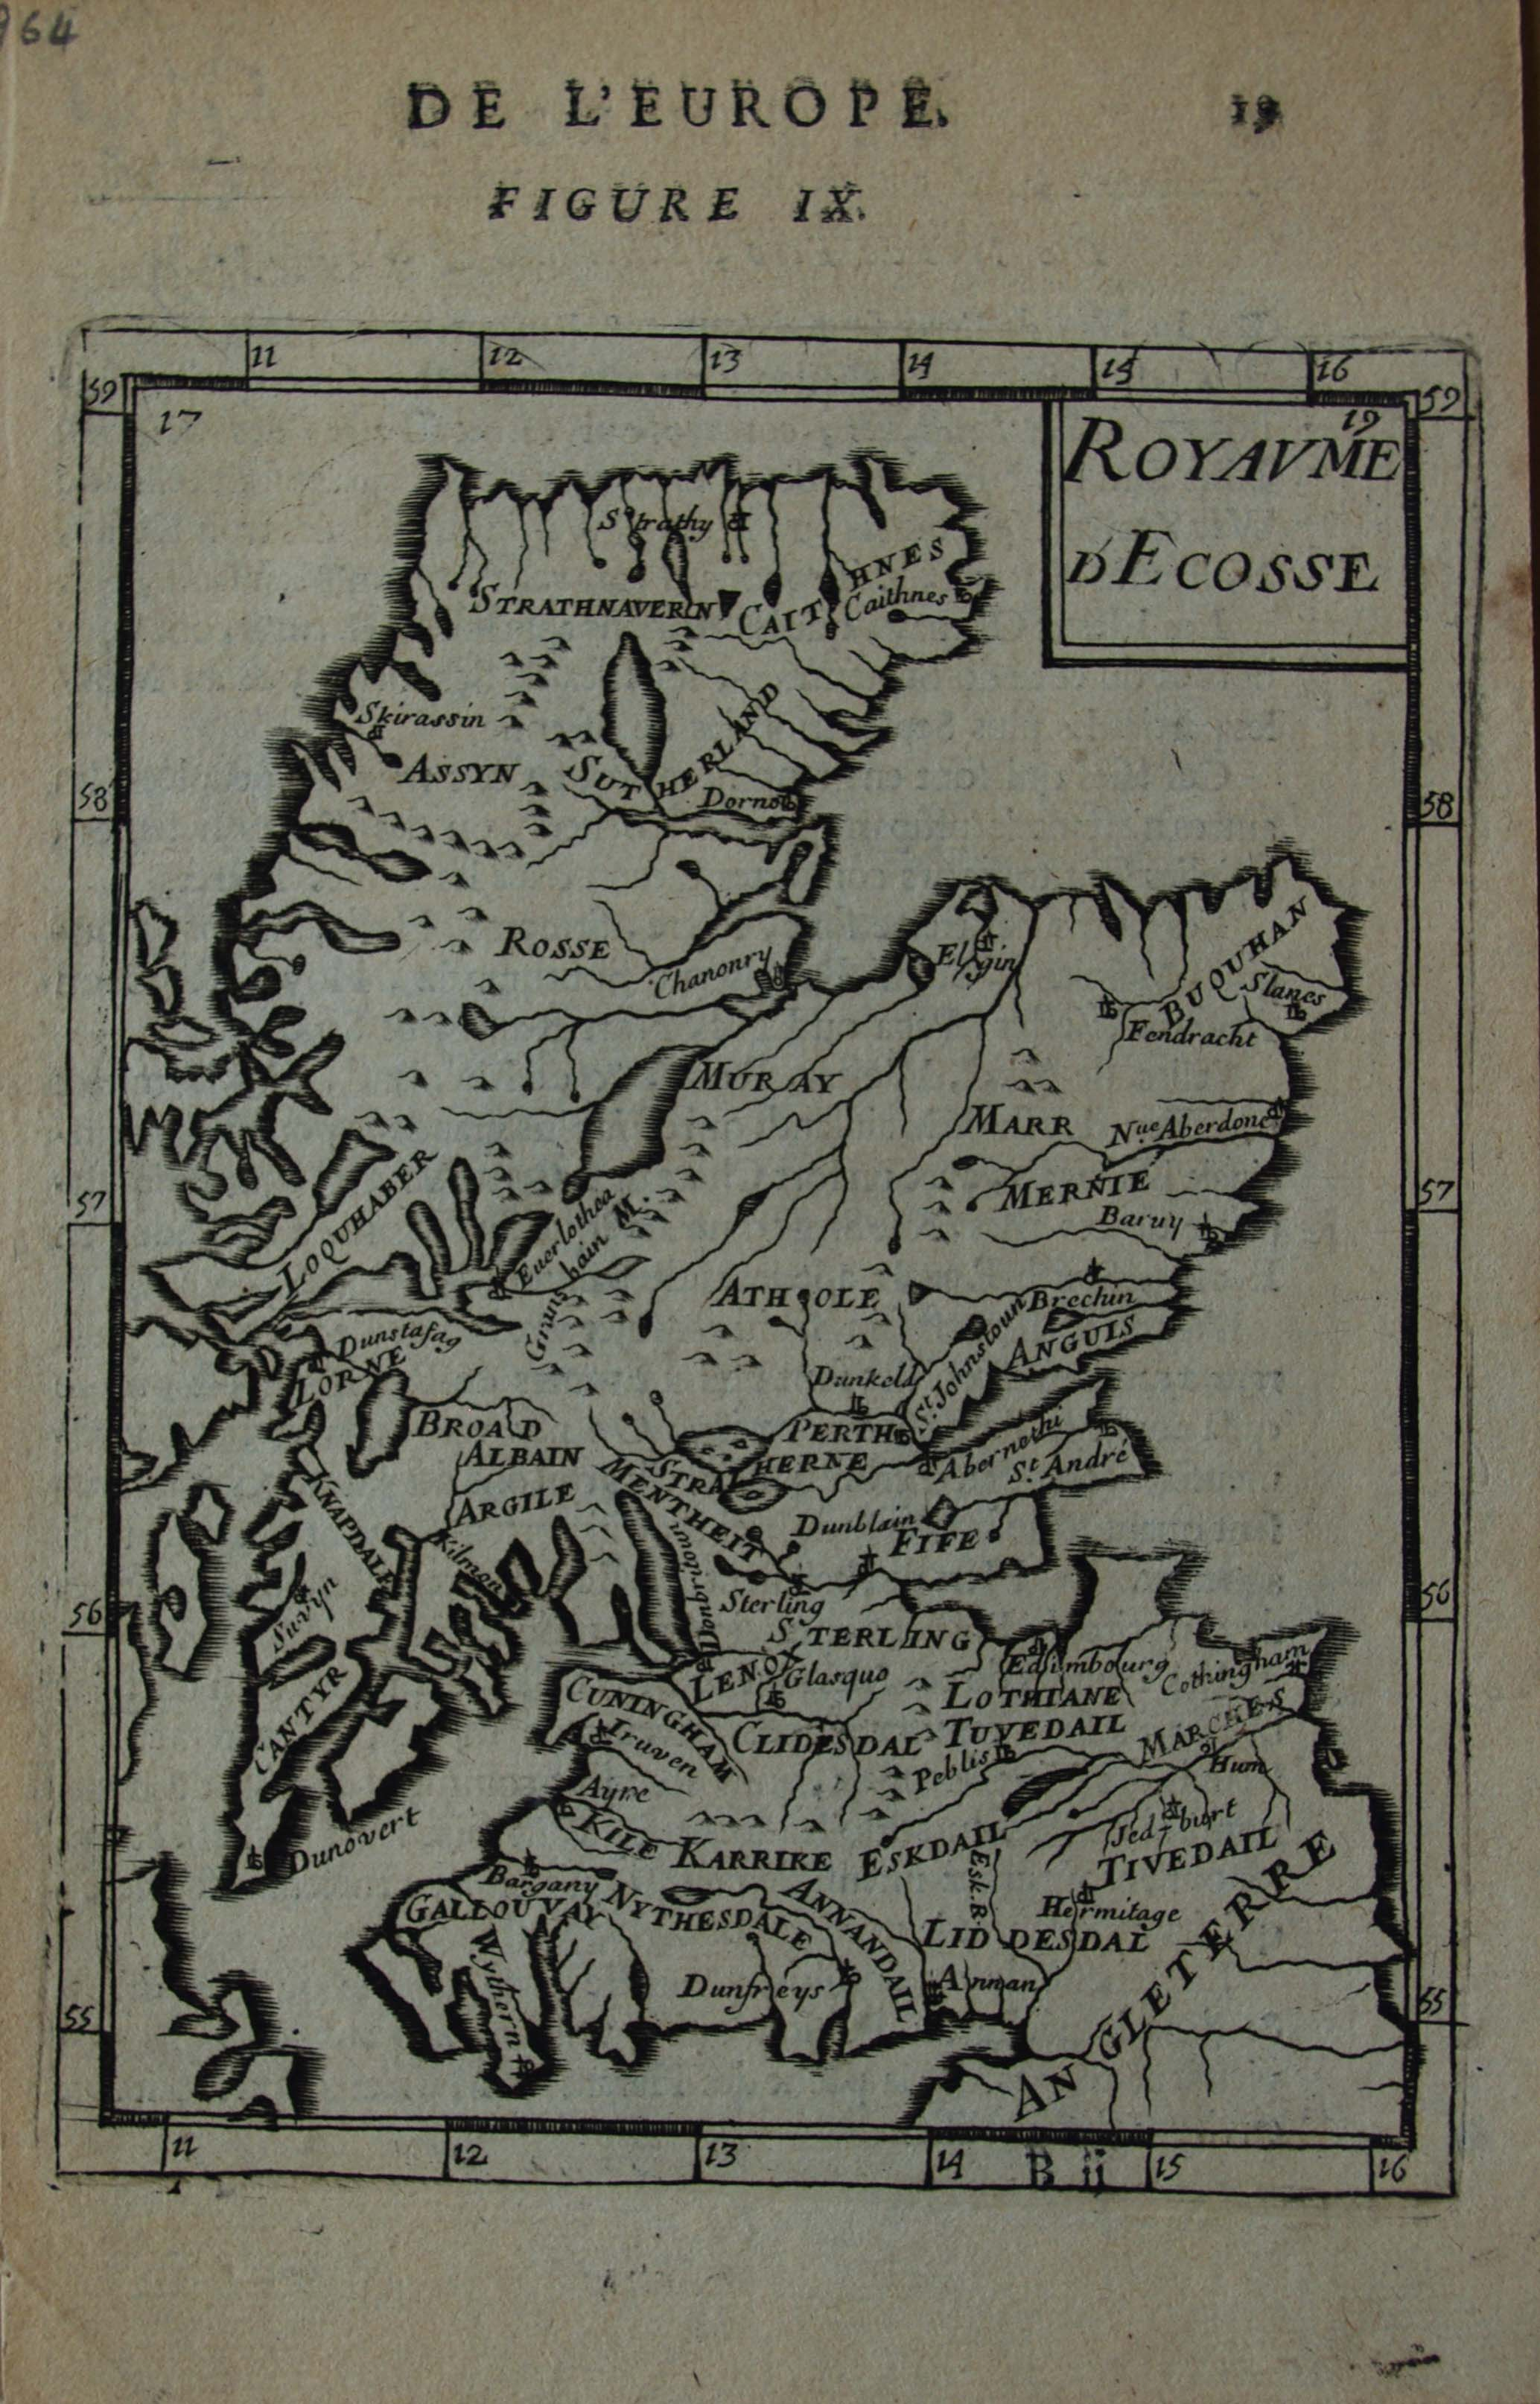 Royaume d'Ecosse, click for full res image